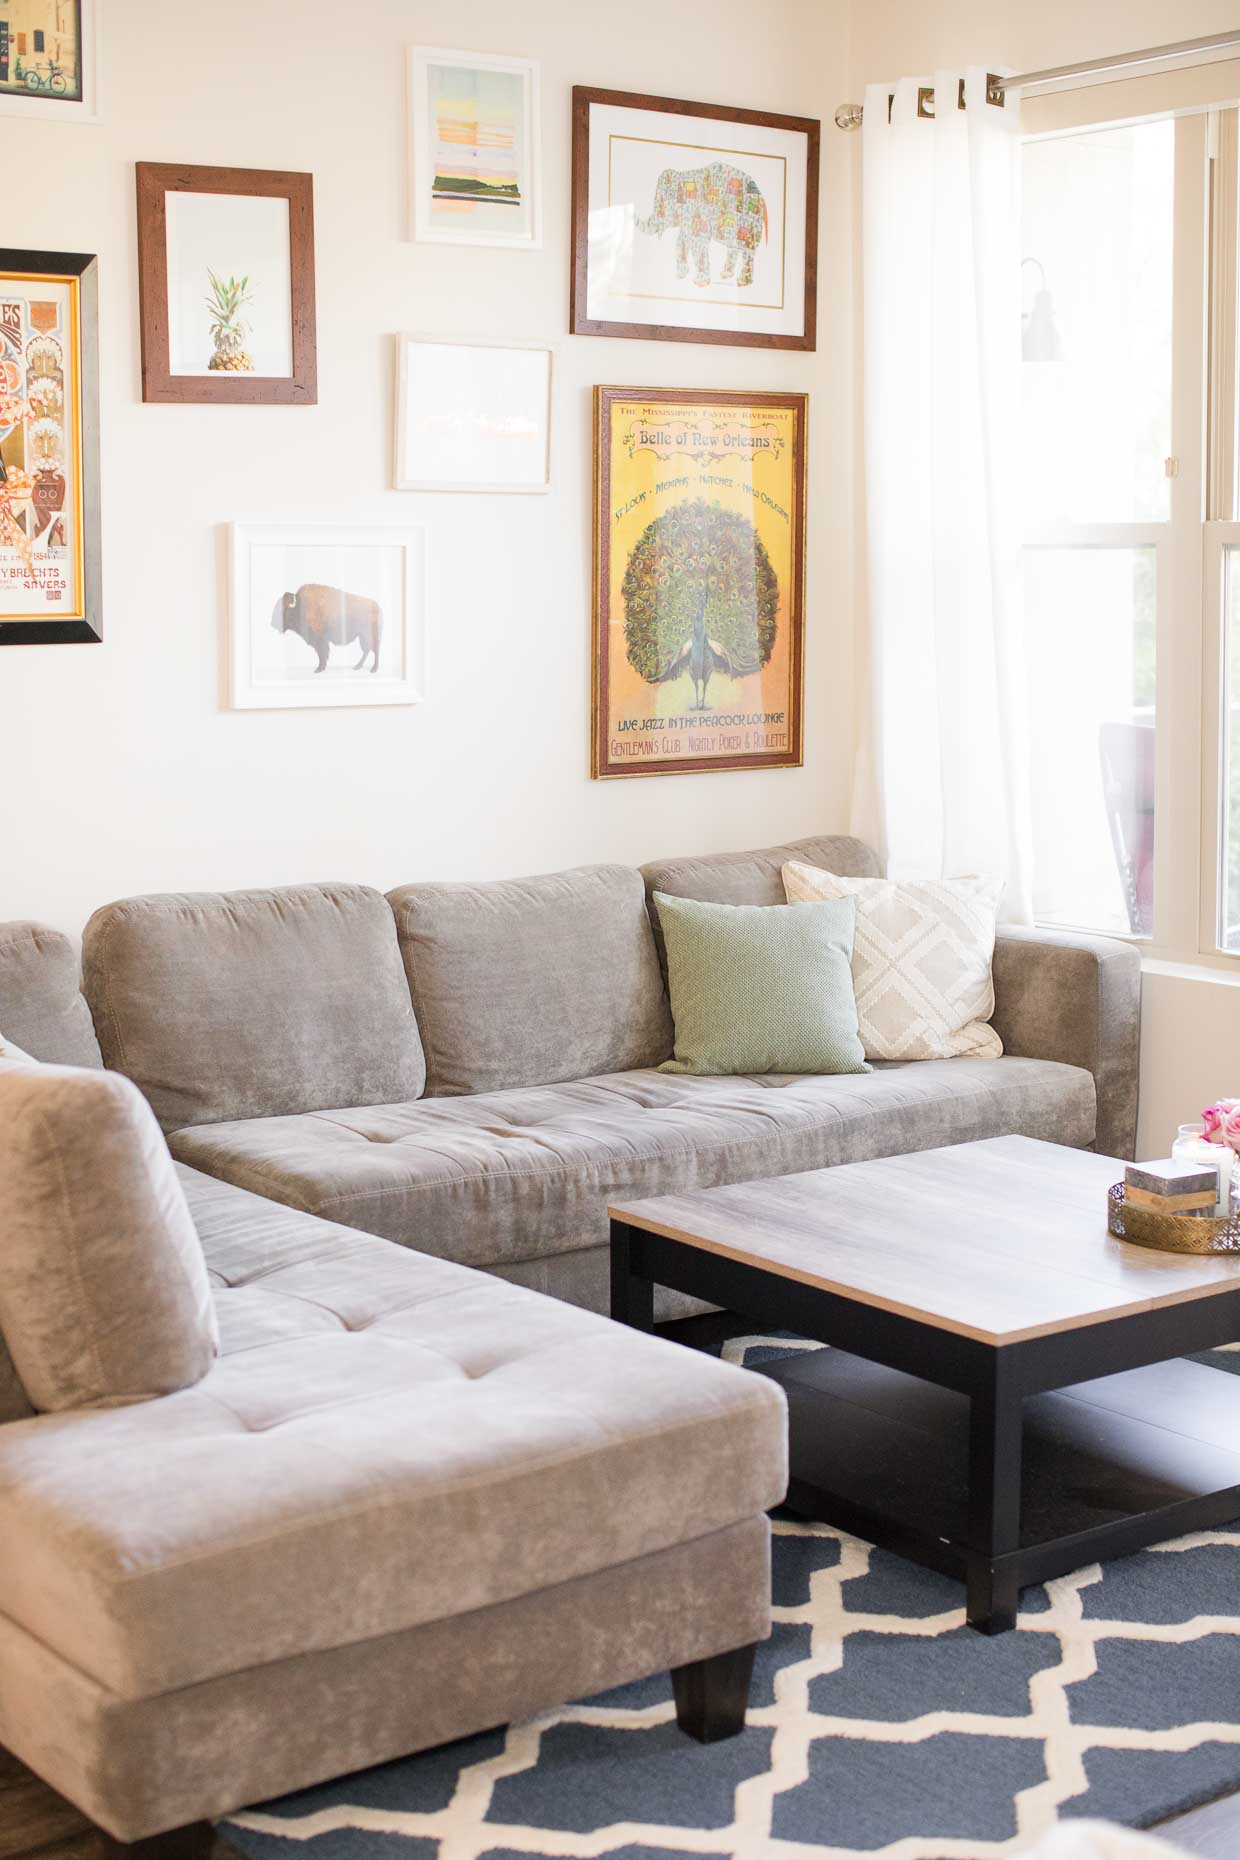 Atlanta Apartment Tour  Affordable Home Decor  Poor Little It Girl